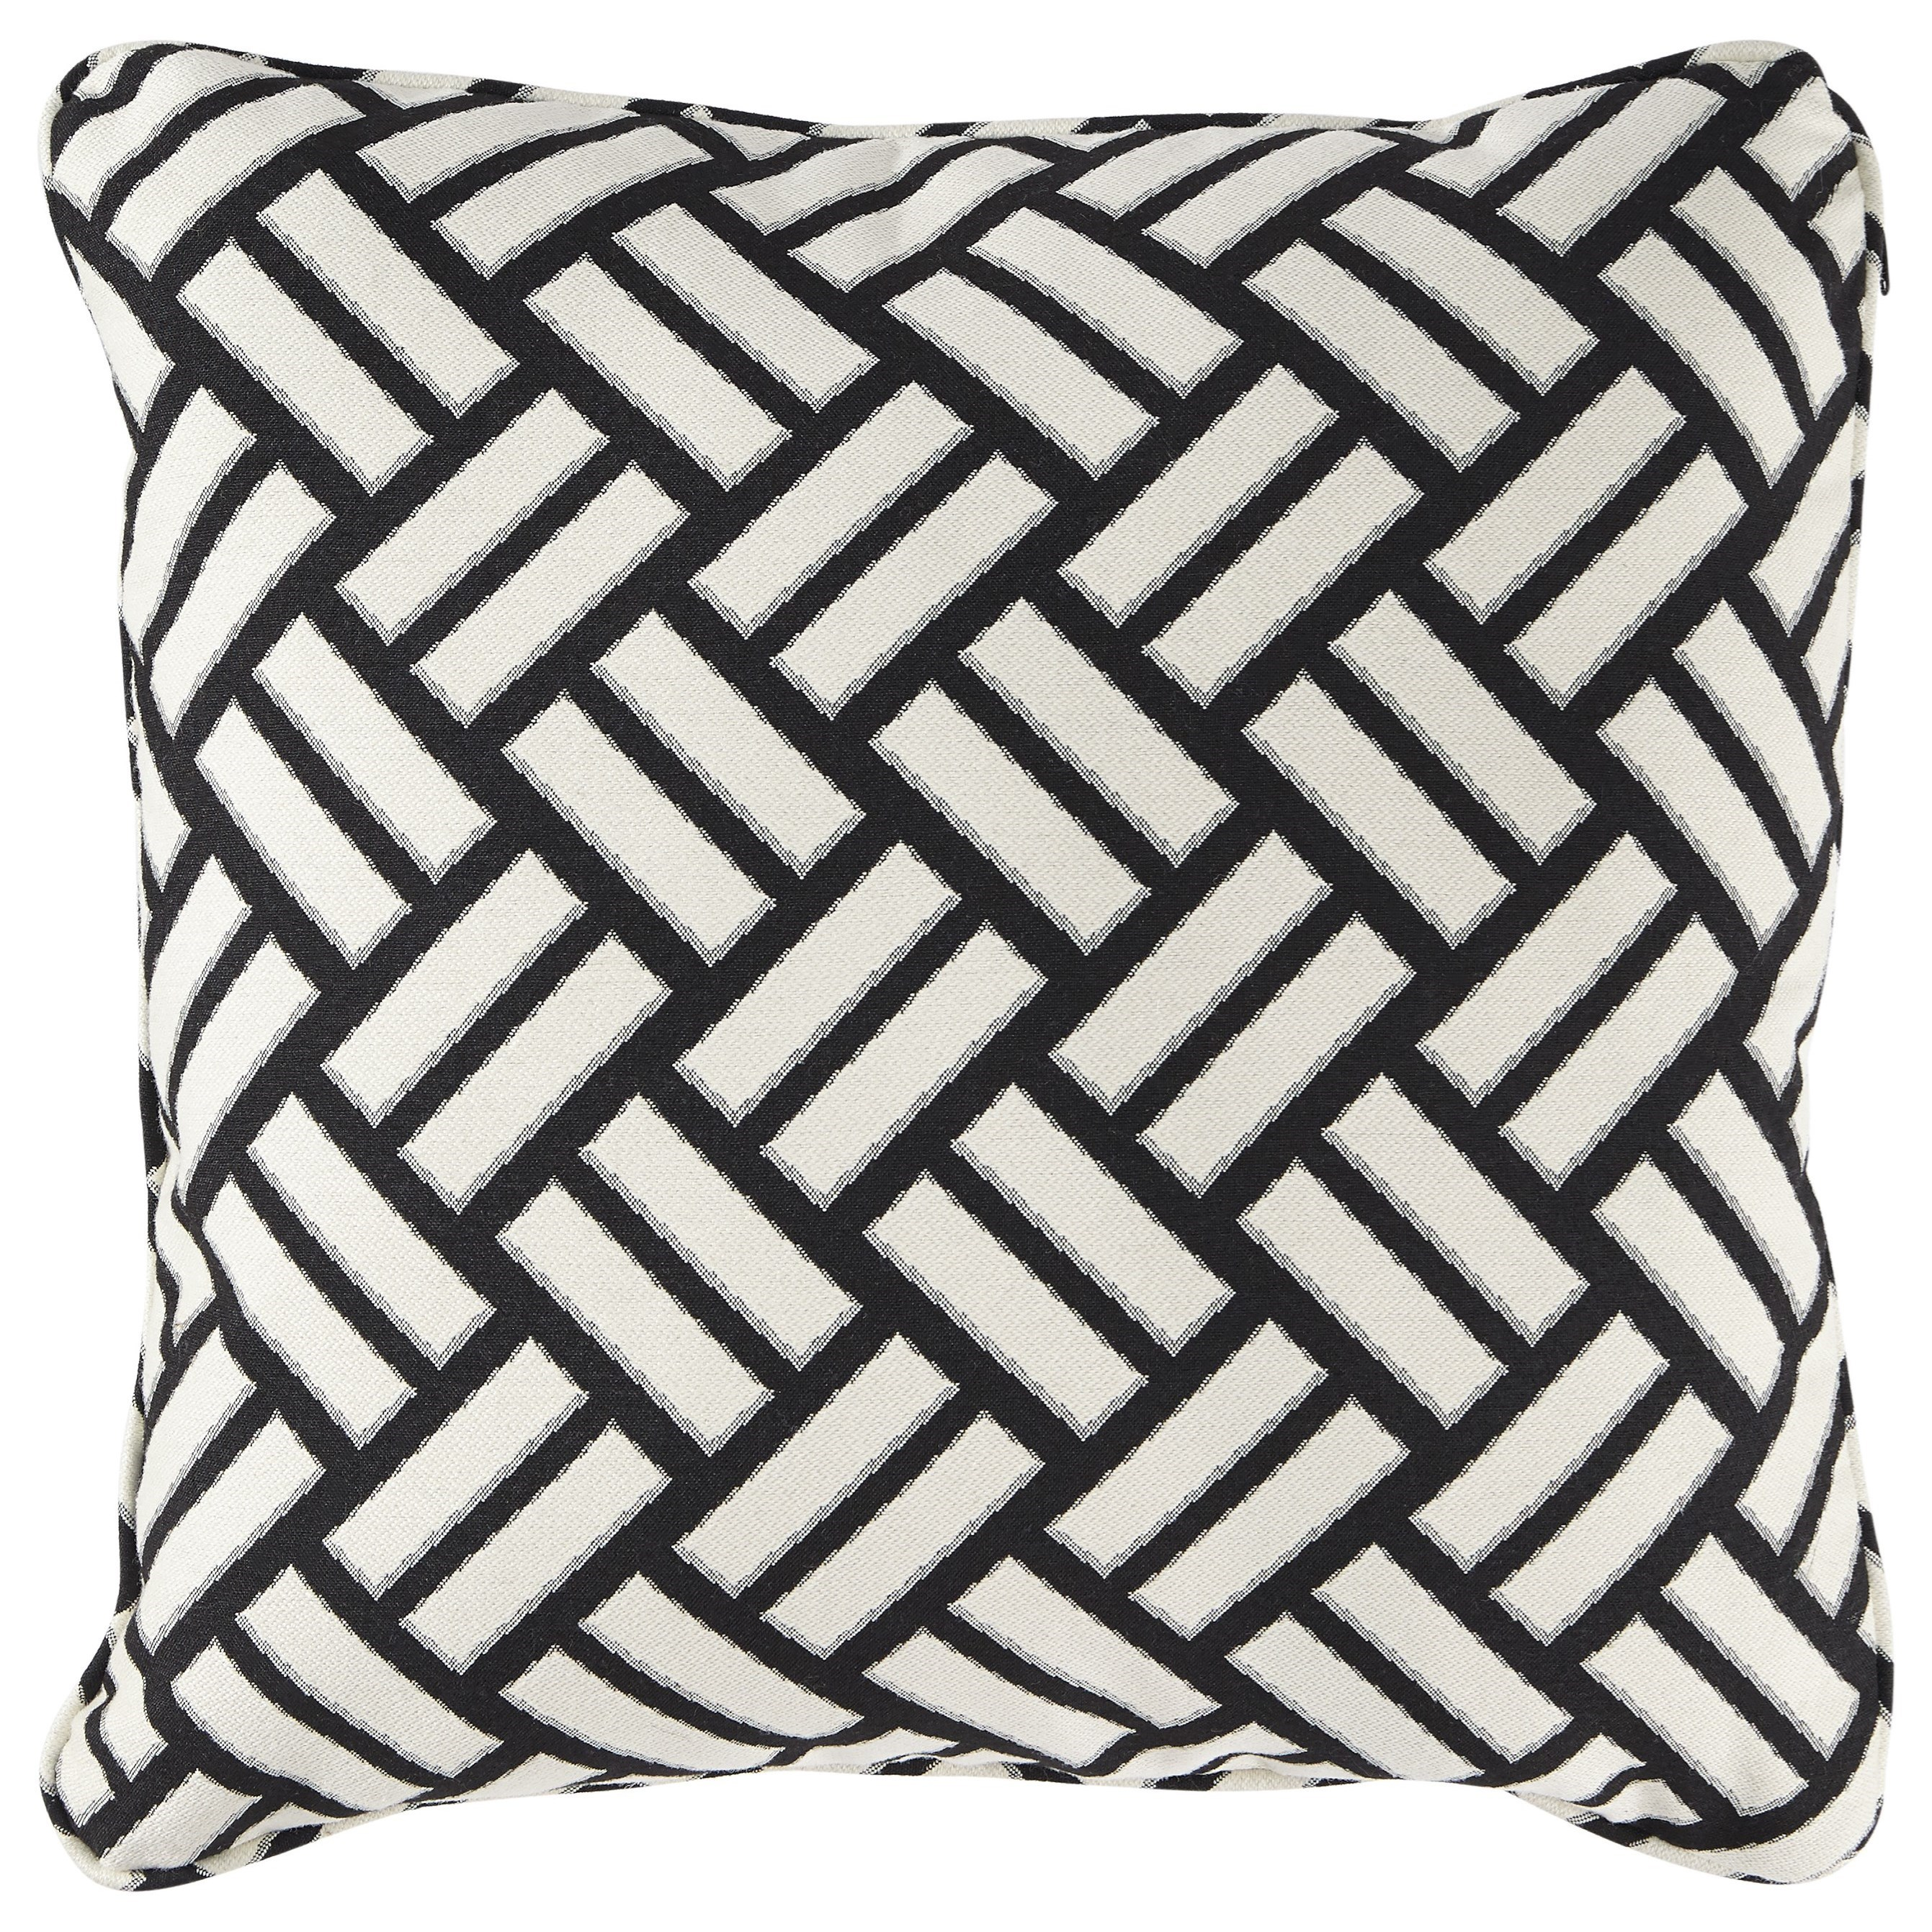 Pillows Ayres Black/White Pillow by Signature Design by Ashley at Value City Furniture